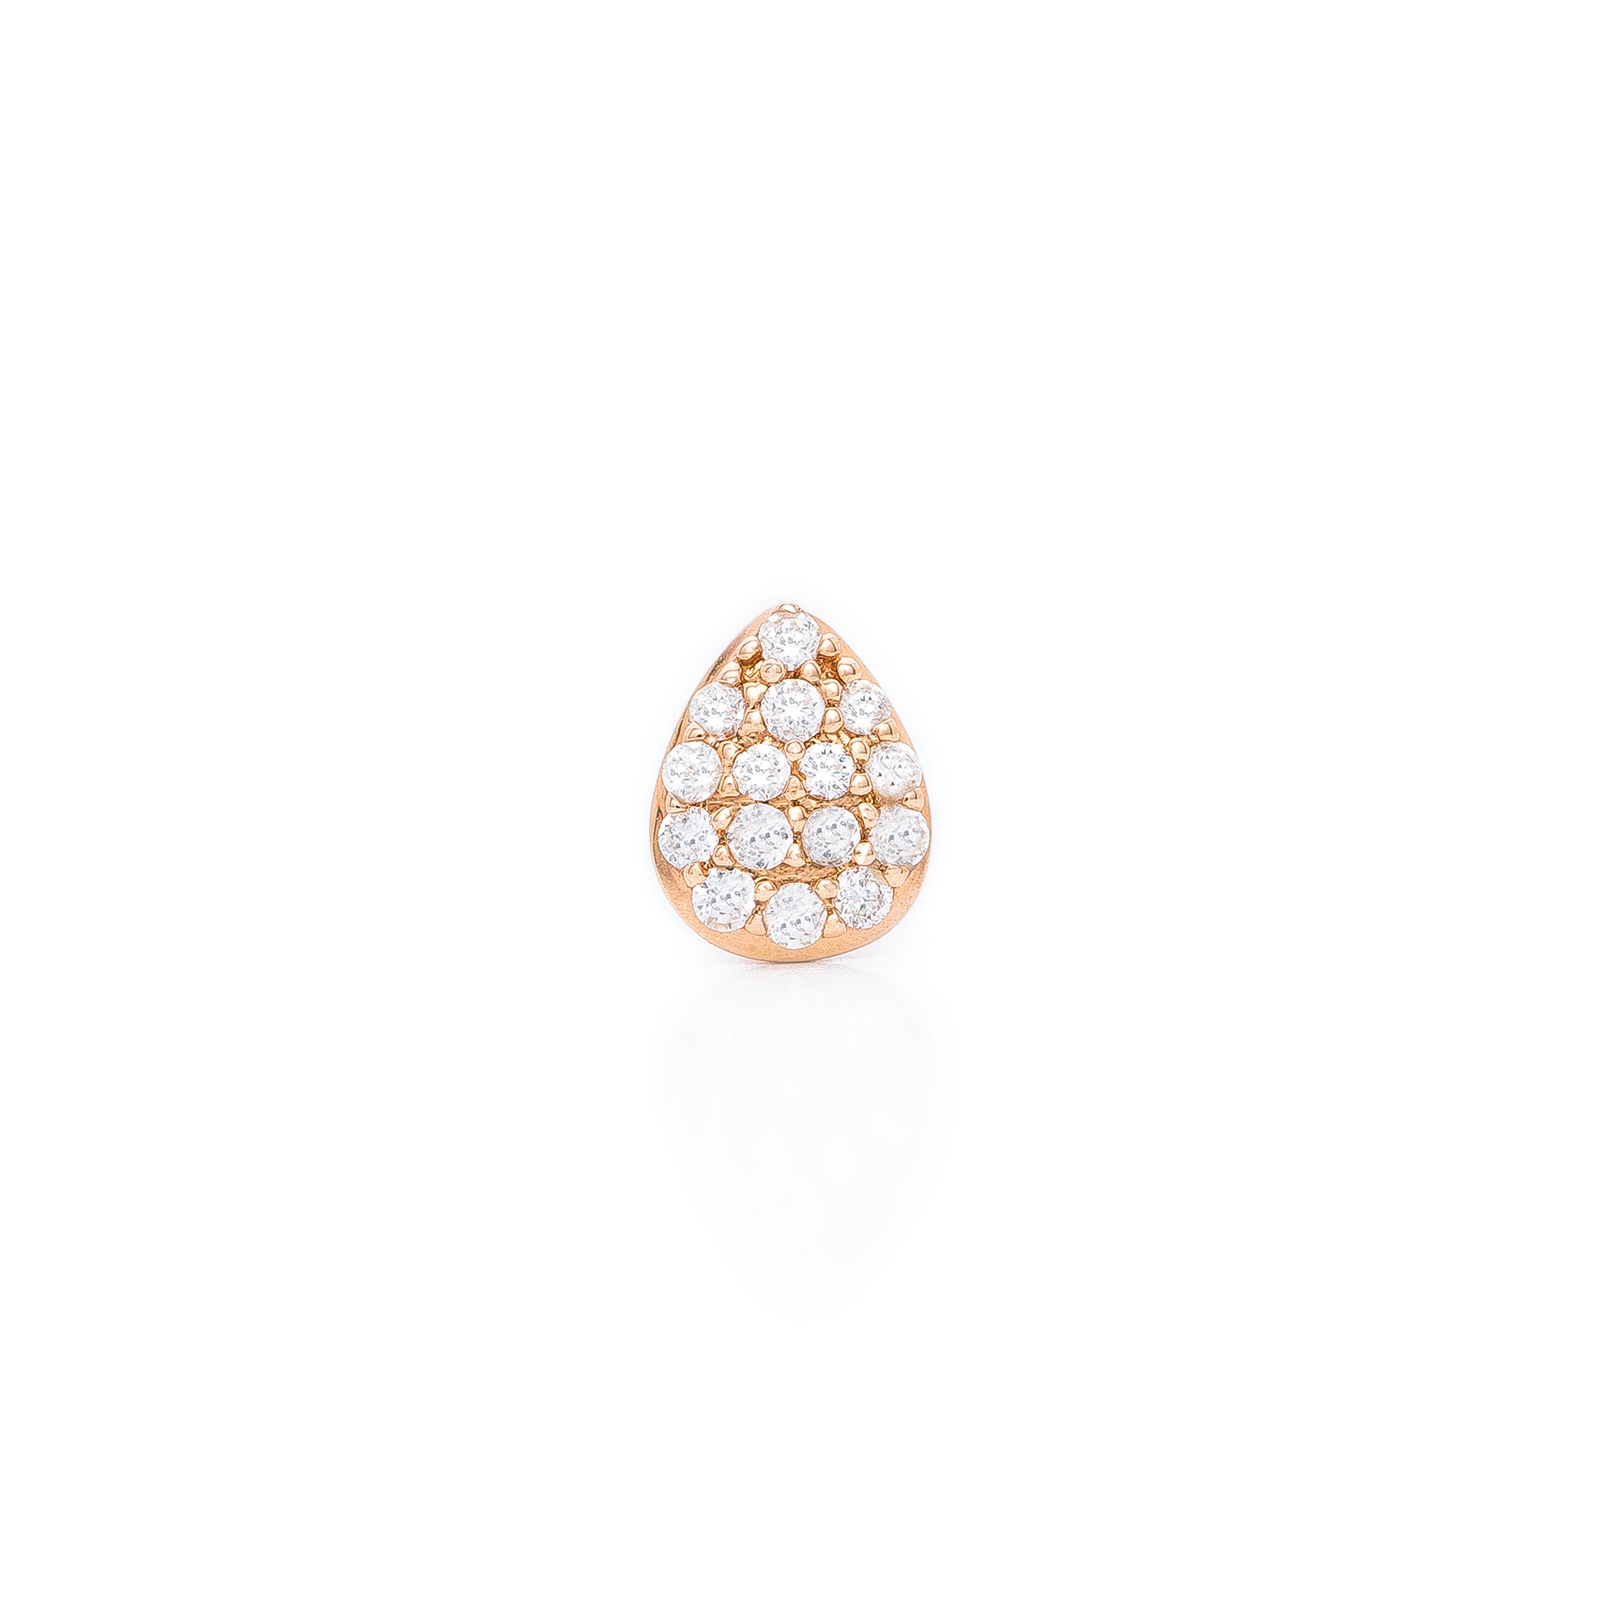 Earring Png (110+ images in Collection) Page 3.